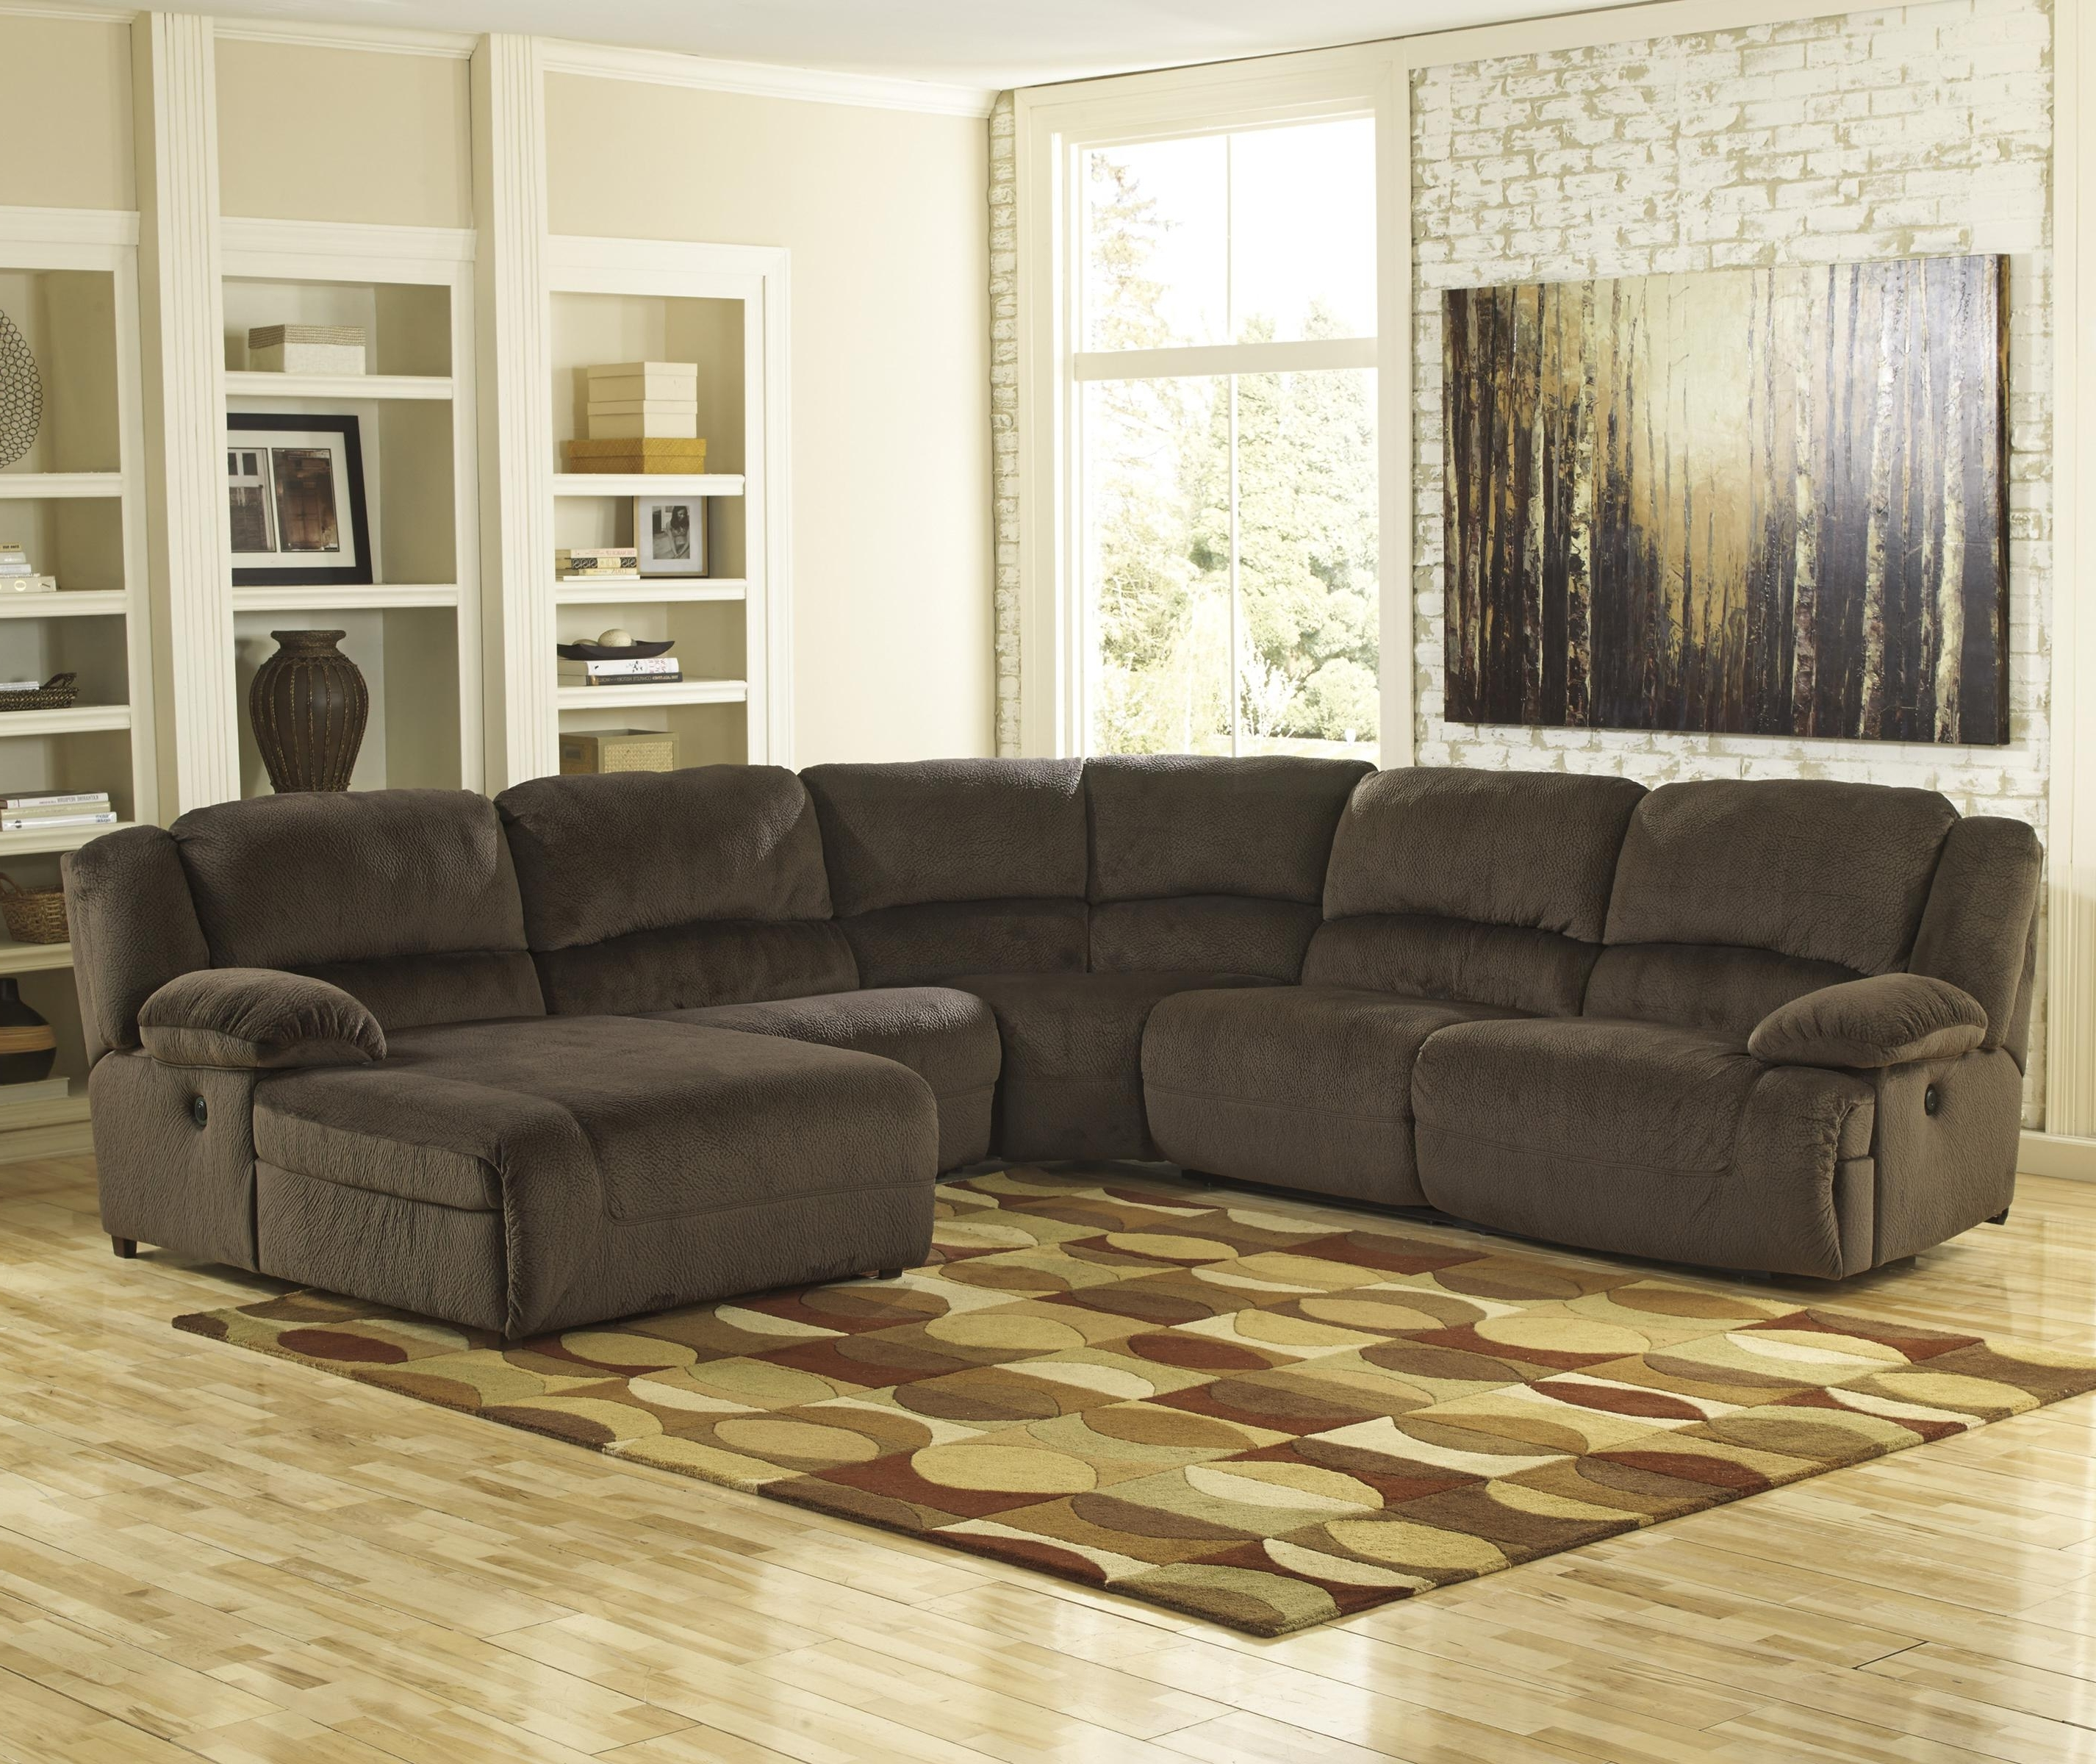 Sectional Sofas At Birmingham Al With Regard To 2018 Toletta – Chocolate Power Reclining Sectional With Chaise (View 16 of 20)